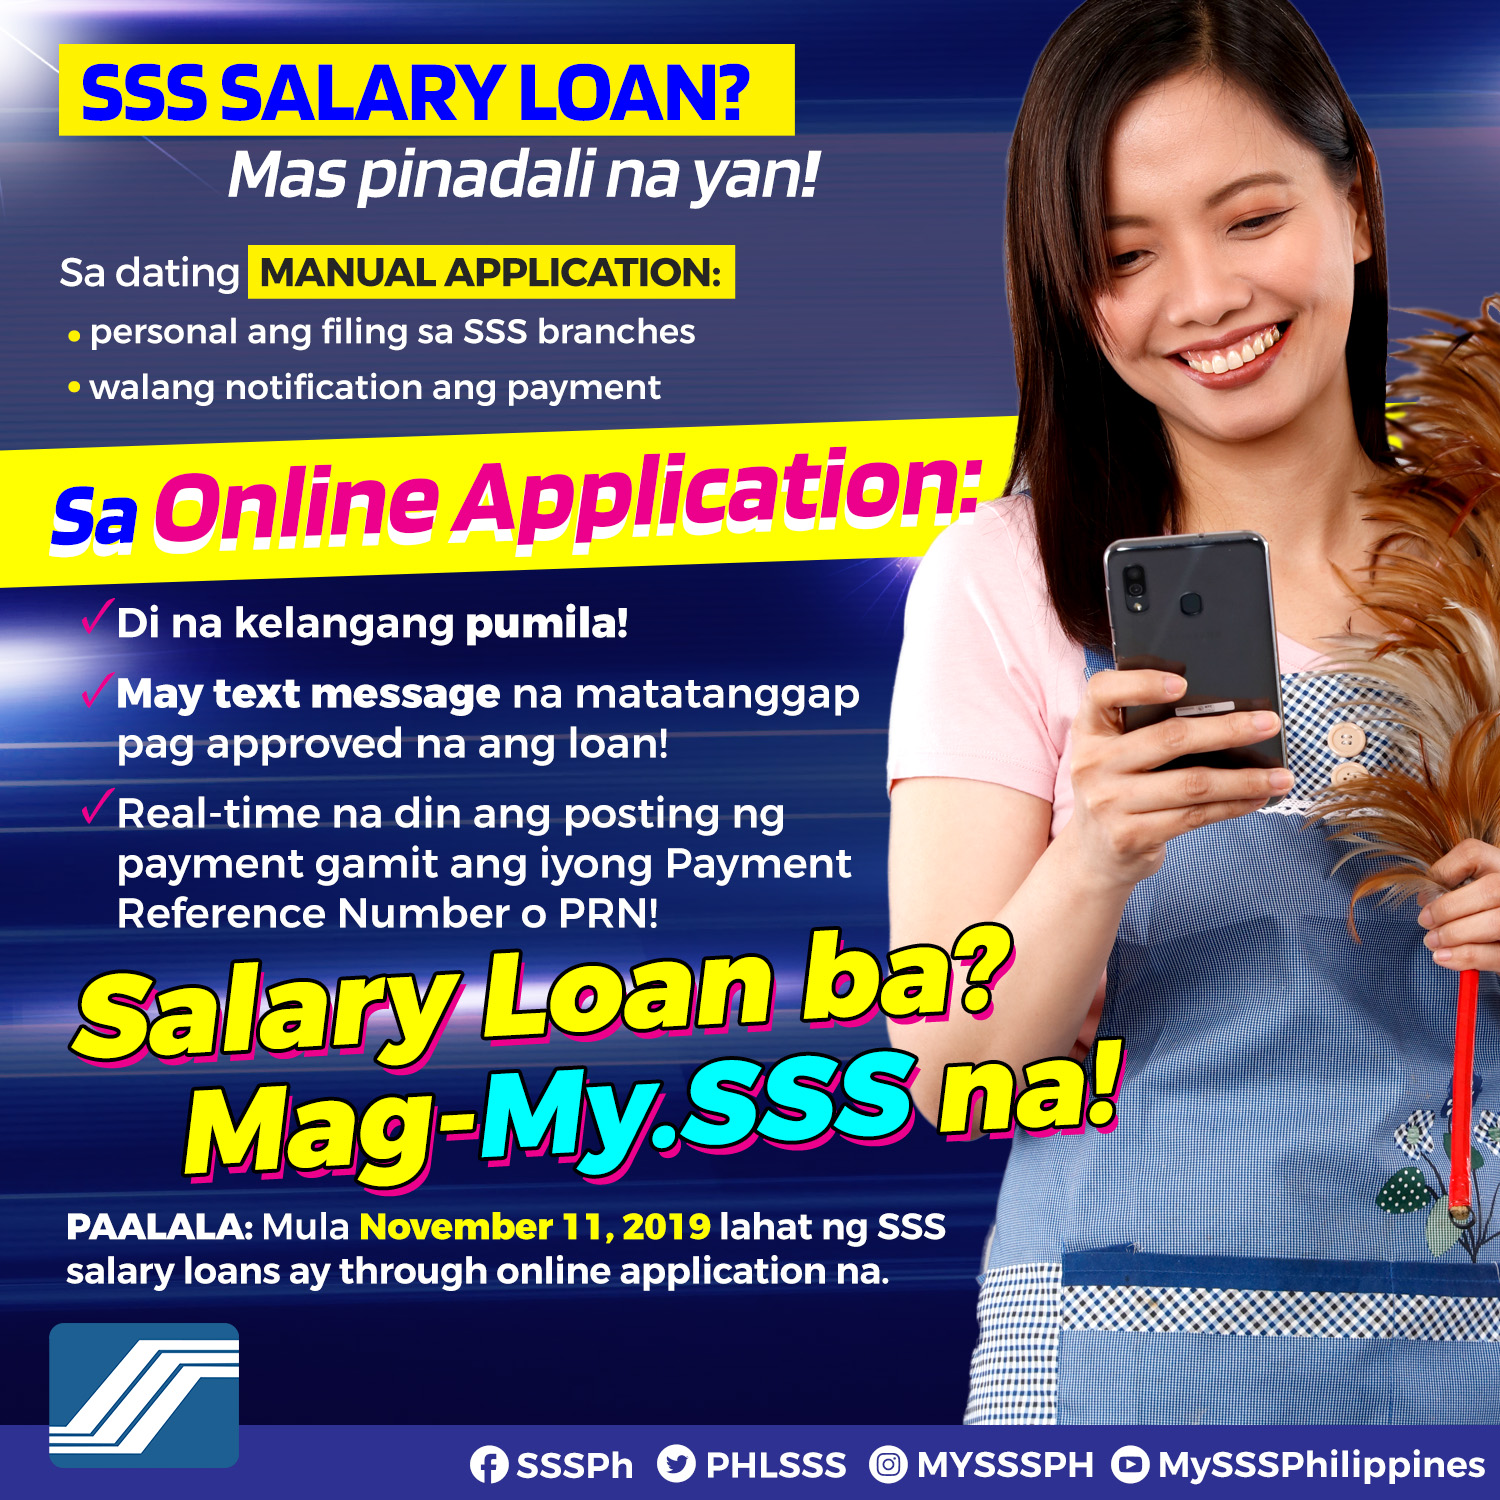 Sss Loan Calamity Calamity Online